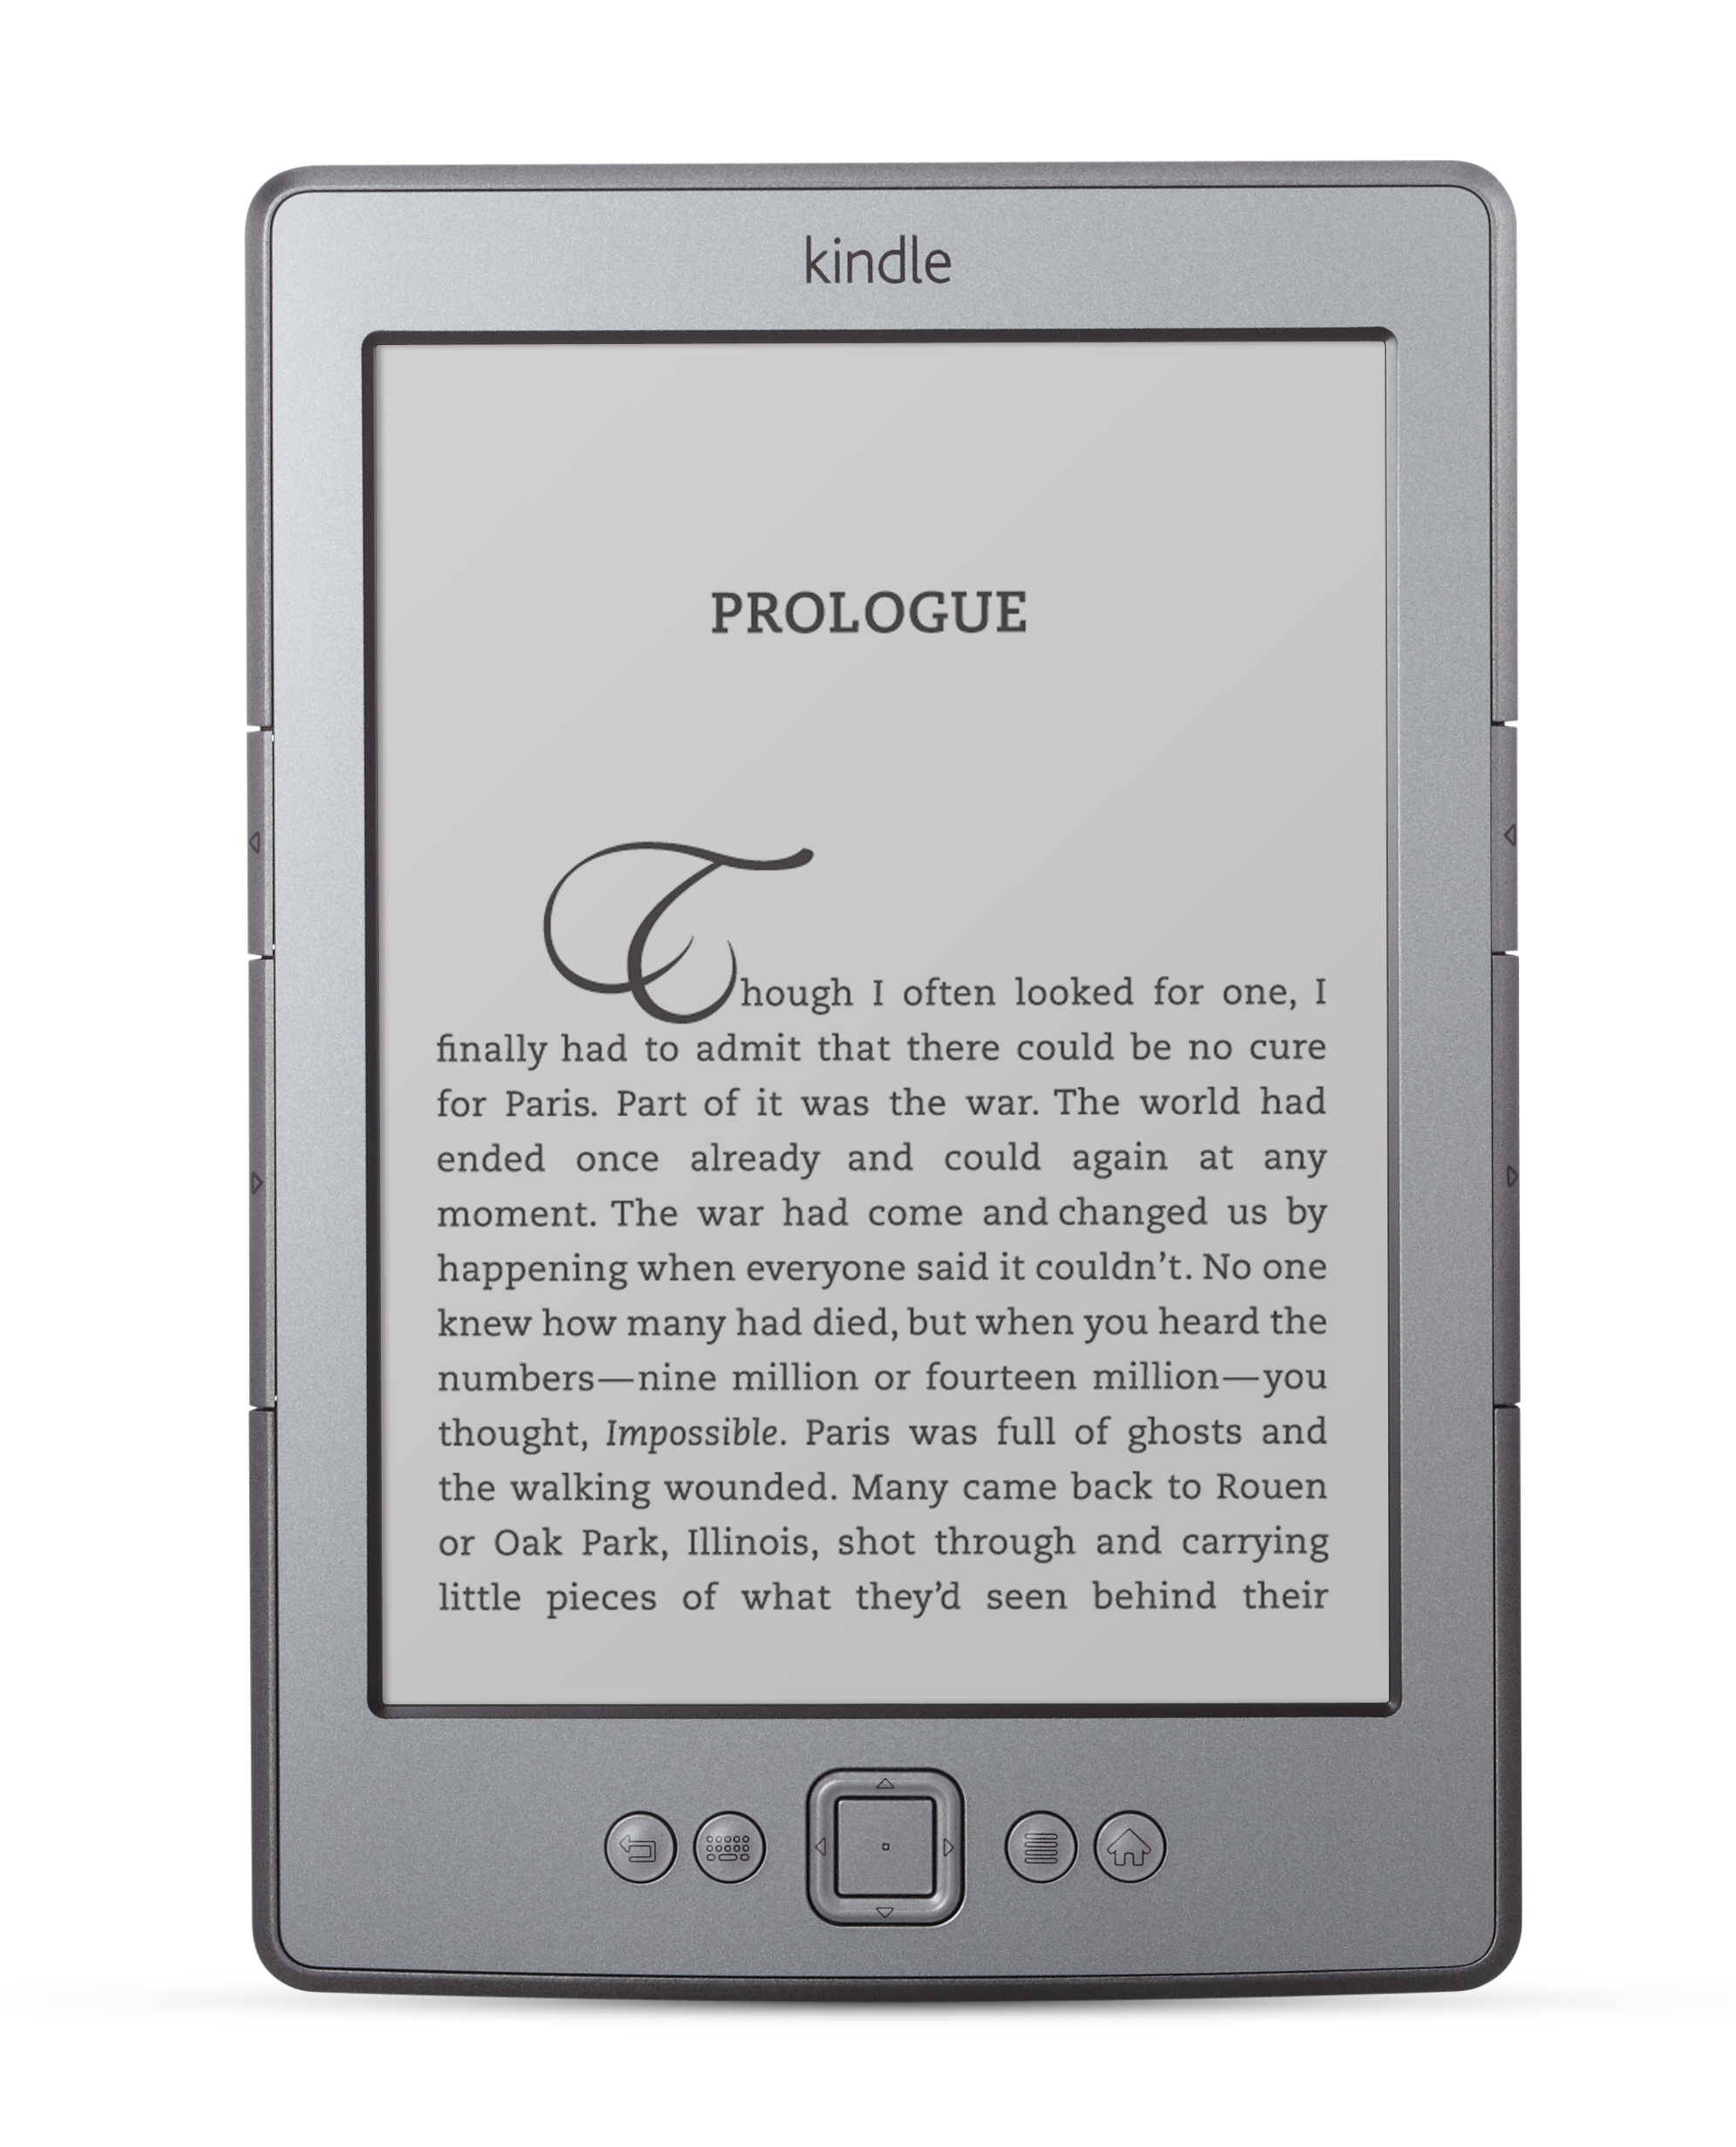 Kindle Review Test 4 fire